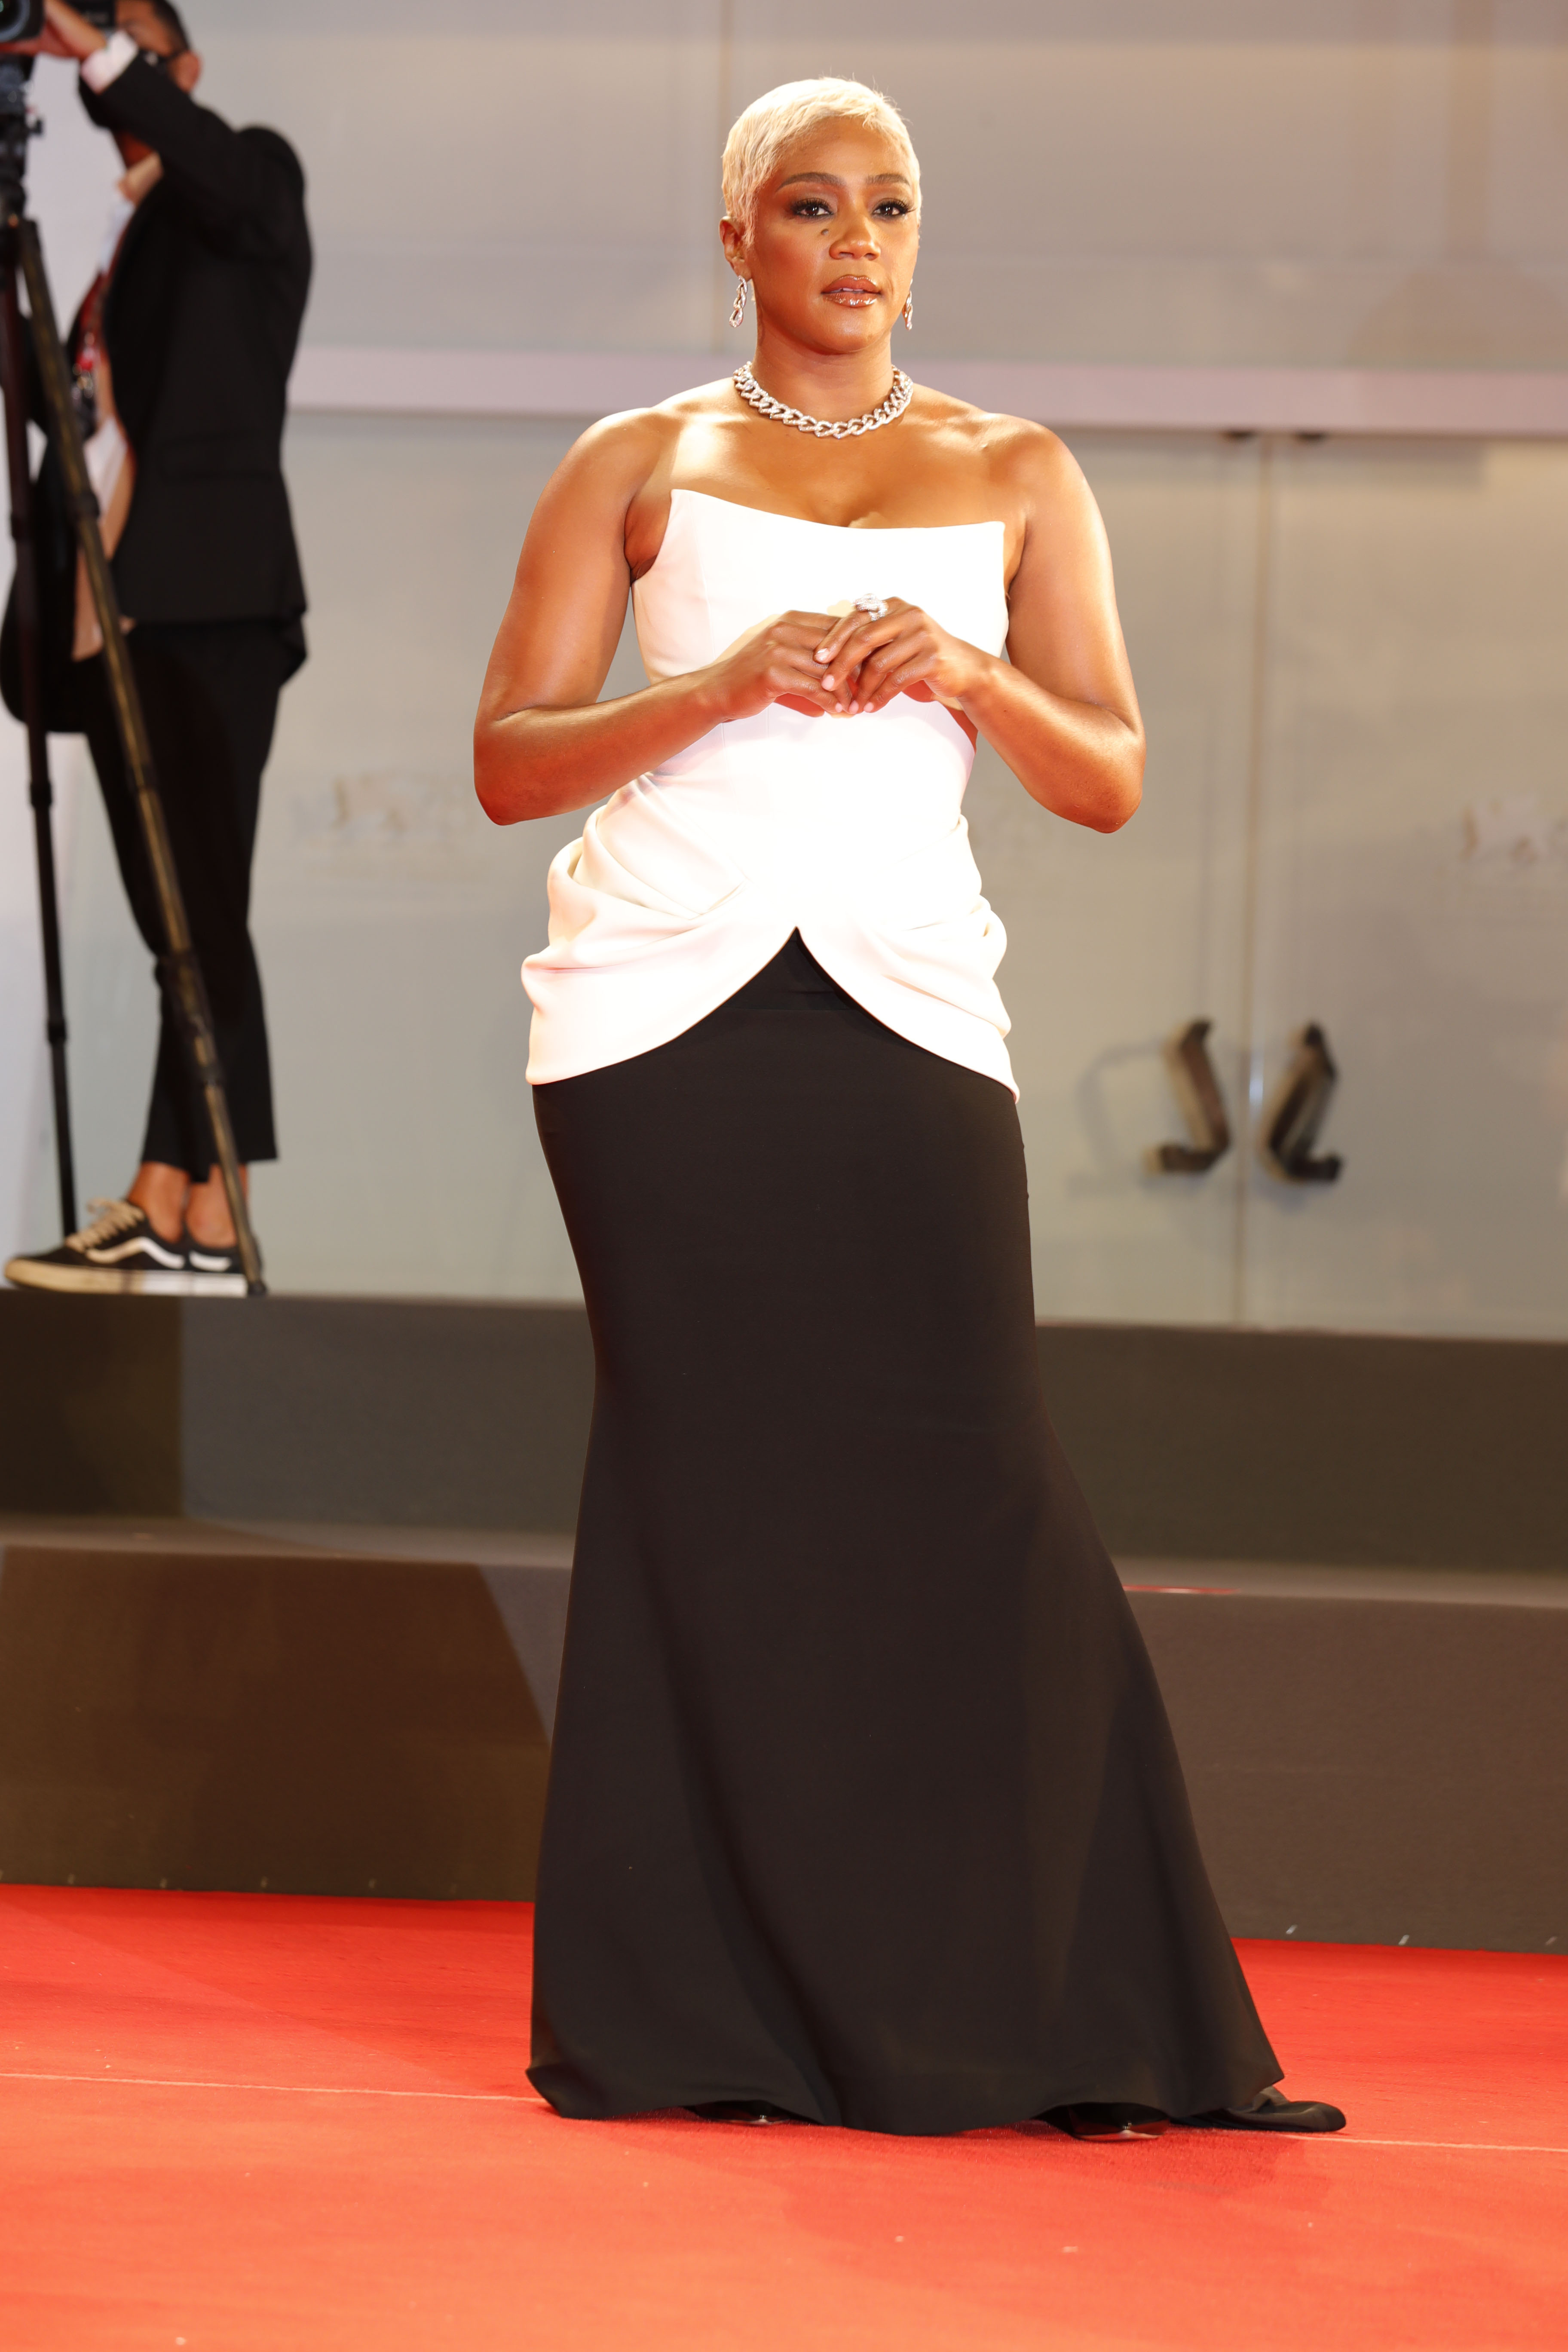 Paul Schrader at The Card Counter Premiere and Opening Ceremony of the 78th Venice International Film Festival in Venice, Italy on September 02, 2021. 02 Sep 2021 Pictured: Tiffany Haddish. Photo credit: GOL/Capital Pictures / MEGA TheMegaAgency.com +1 888 505 6342 (Mega Agency TagID: MEGA783462_015.jpg) [Photo via Mega Agency]